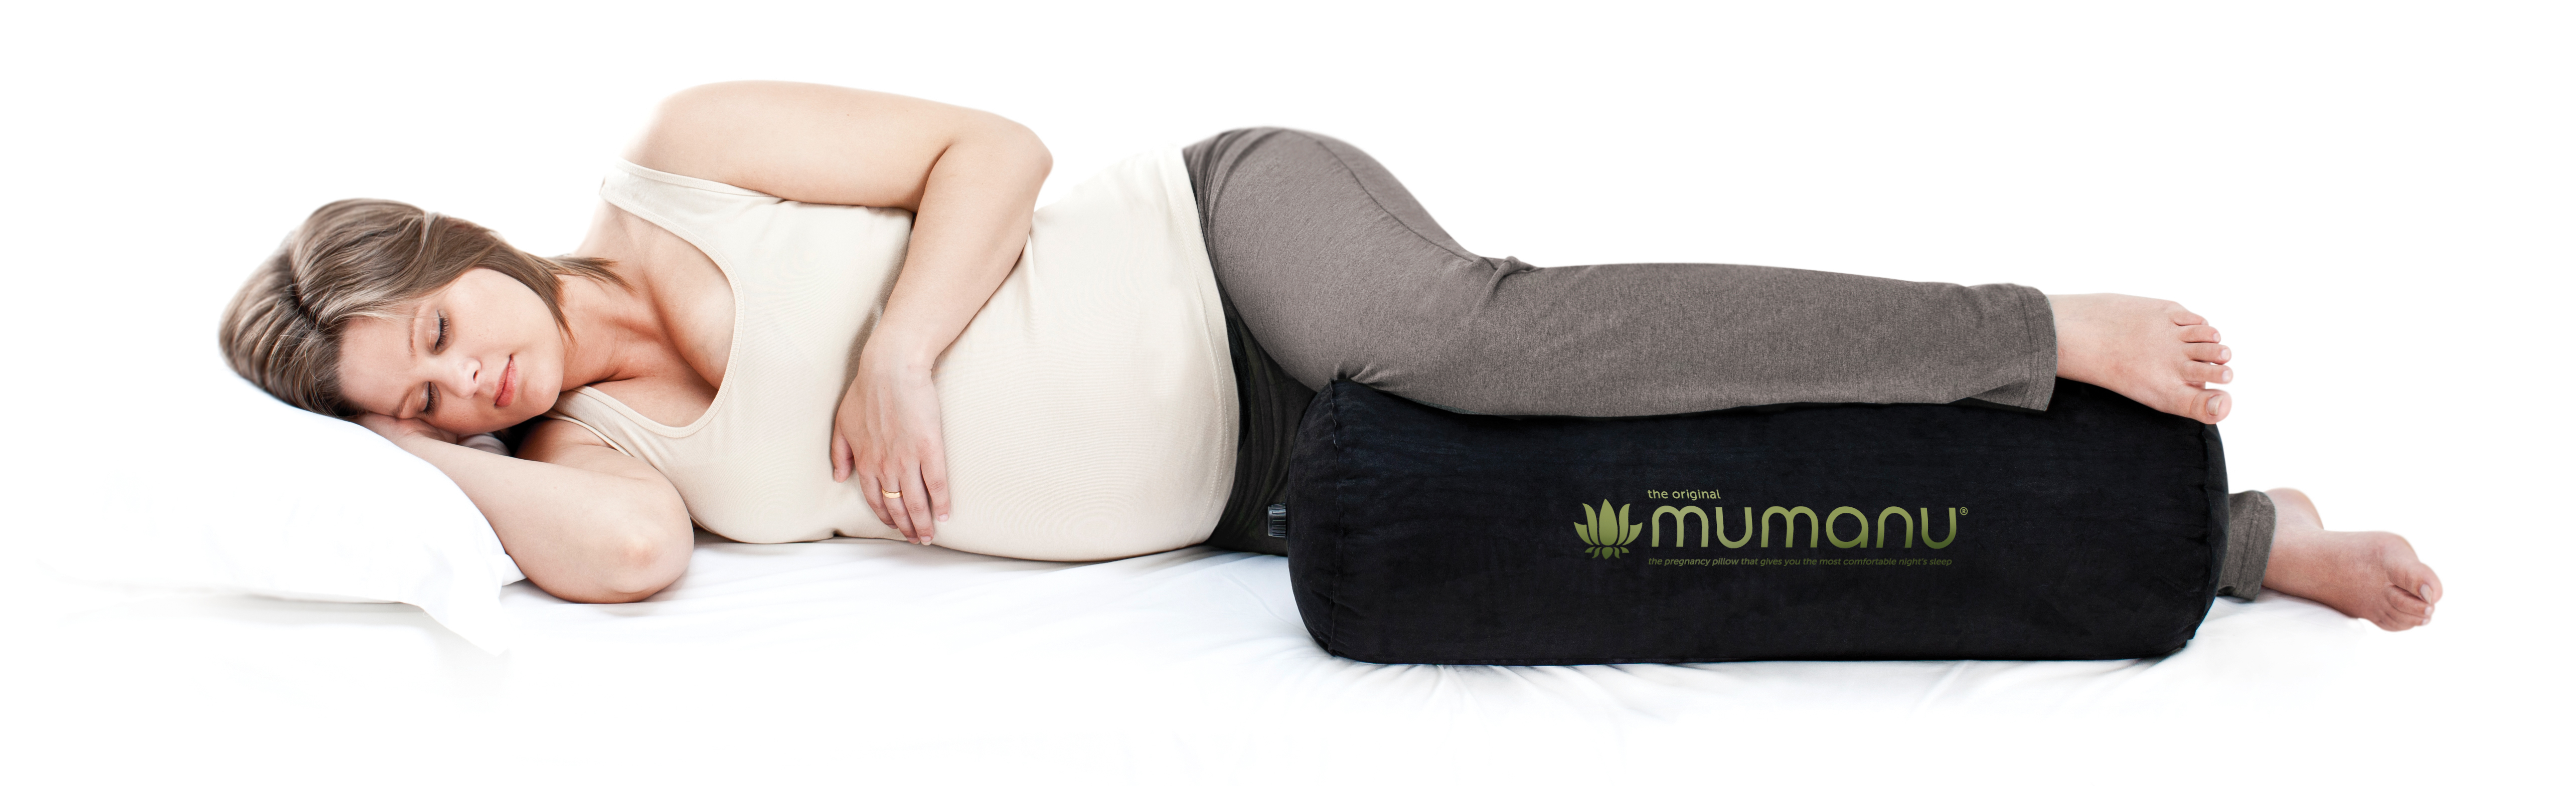 pillow for neck product yoga sleepers sleeper dual sy sale sleep sdslprjntrestdualpstnslppllw side